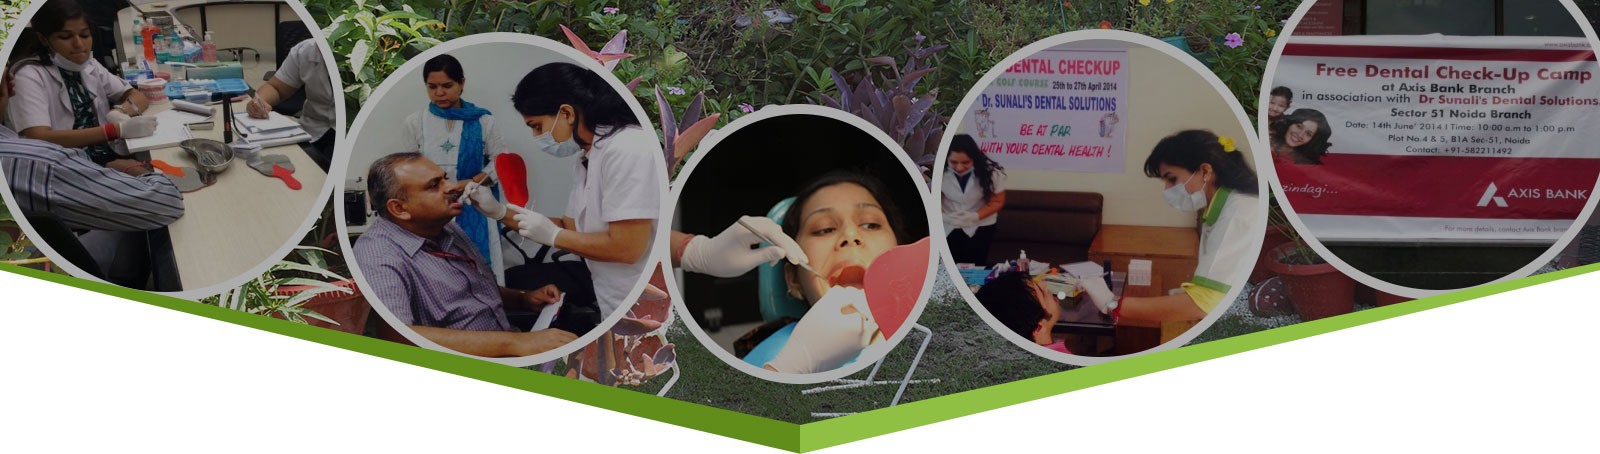 dental-camps-dentist-in-Noida